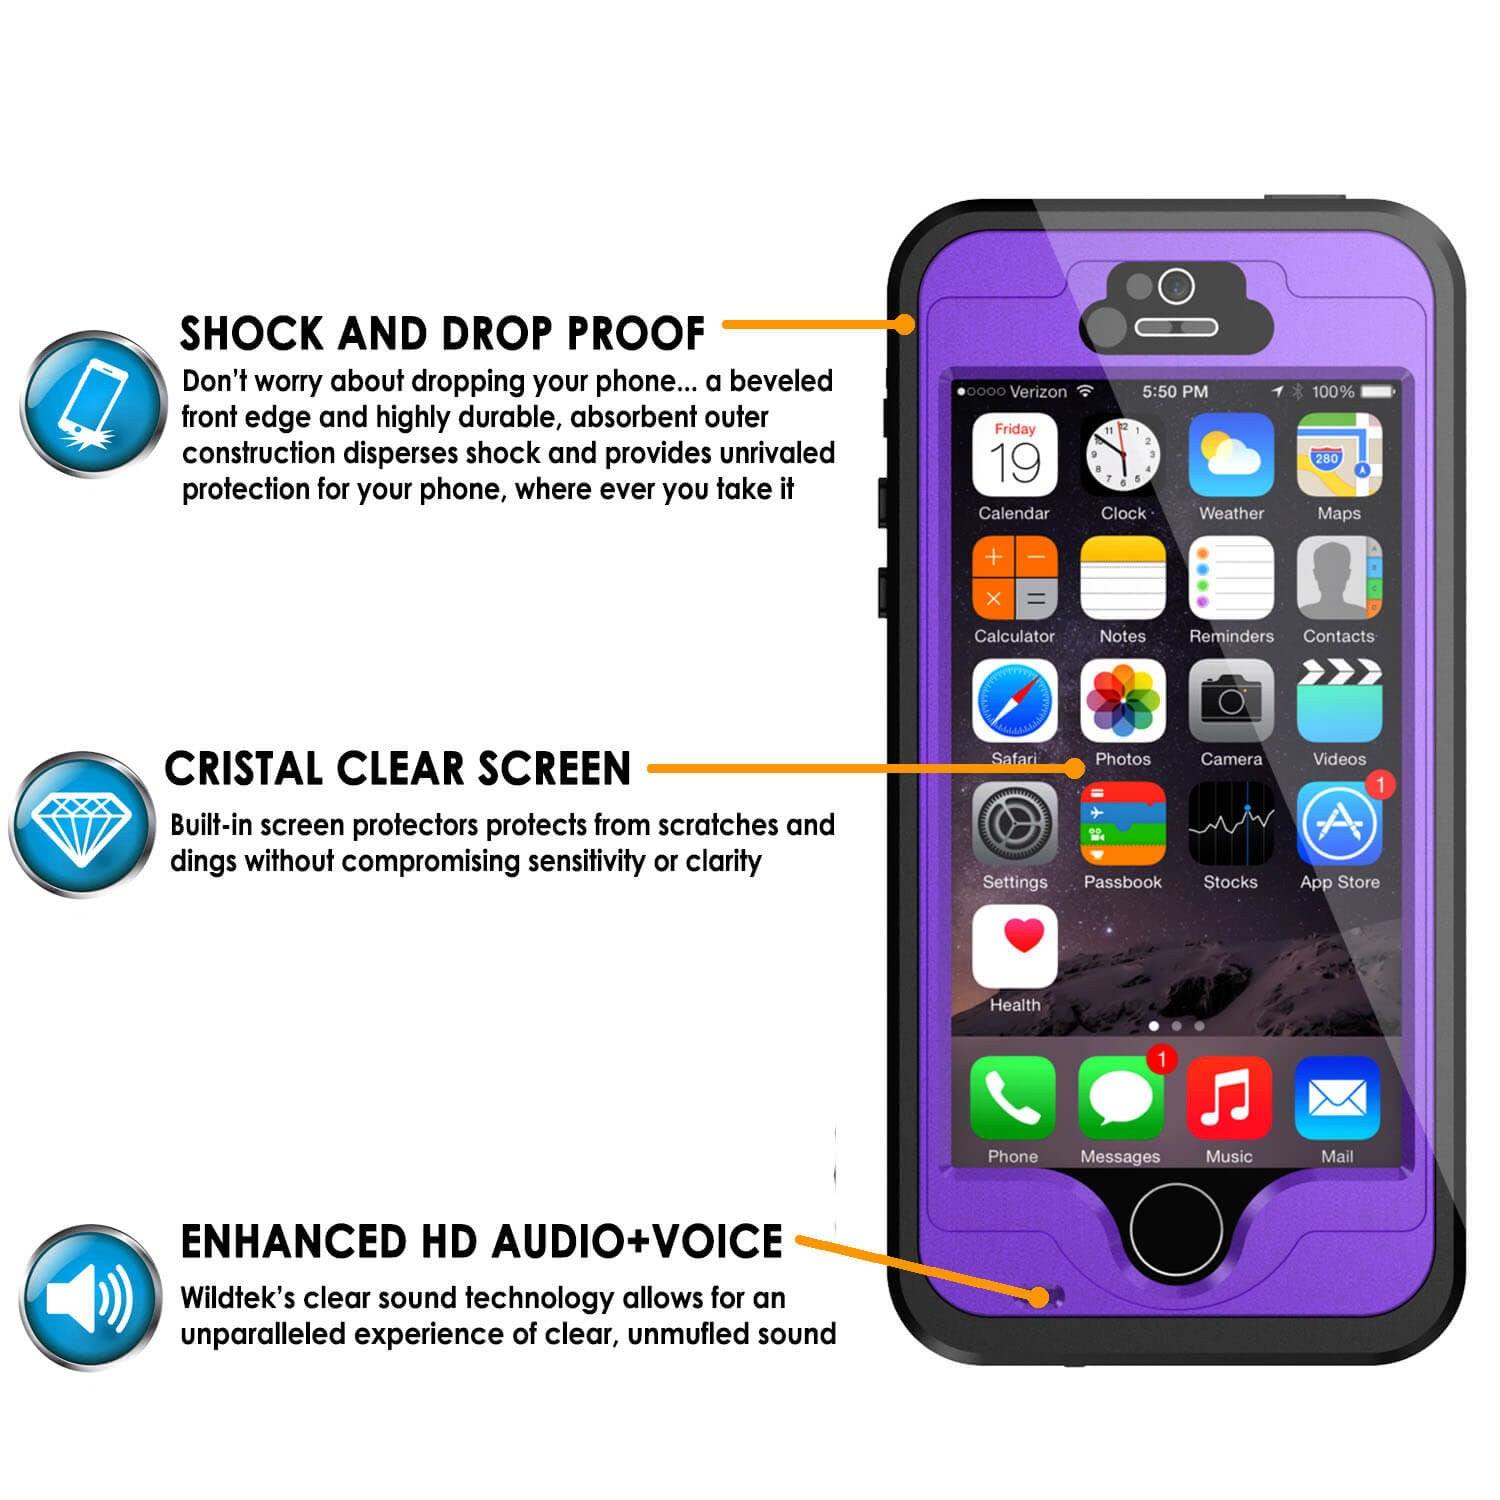 iPhone 5S/5 Waterproof Case PunkCase StudStar Purple Case Water/Shock/Dirt Proof | Lifetime Warranty